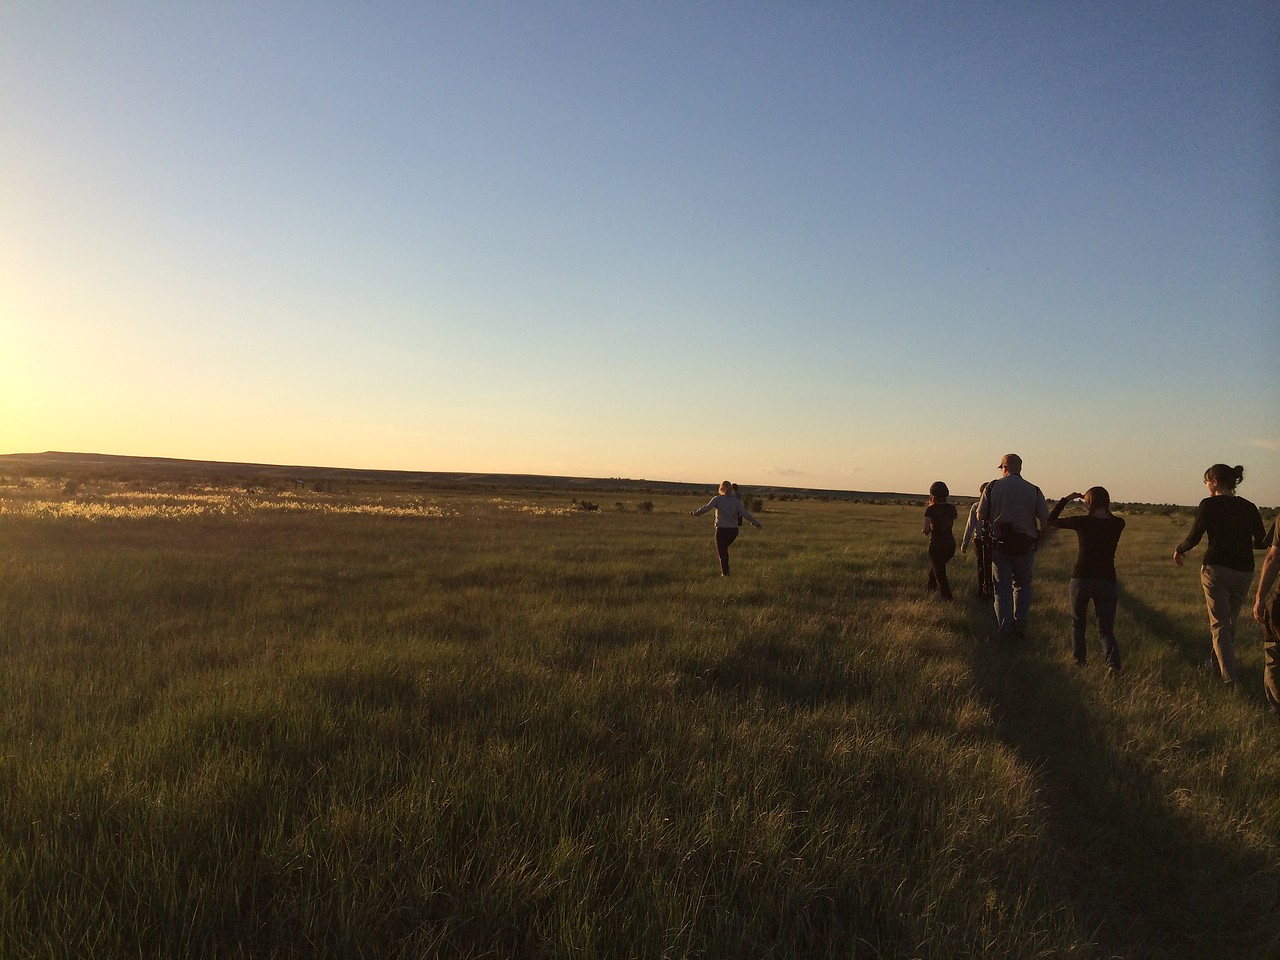 """Summer days are long on the Great Plains. Here, the June 2014 Adventurers and Scientists for Conservation Landmark volunteer crew takes an evening walk out to the prairie dog town after a day spent collecting wildlife data on the American Prairie Reserve. Learn how to join a crew at  <a href=""""http://www.adventurescience.org/landmark"""">http://www.adventurescience.org/landmark</a>."""